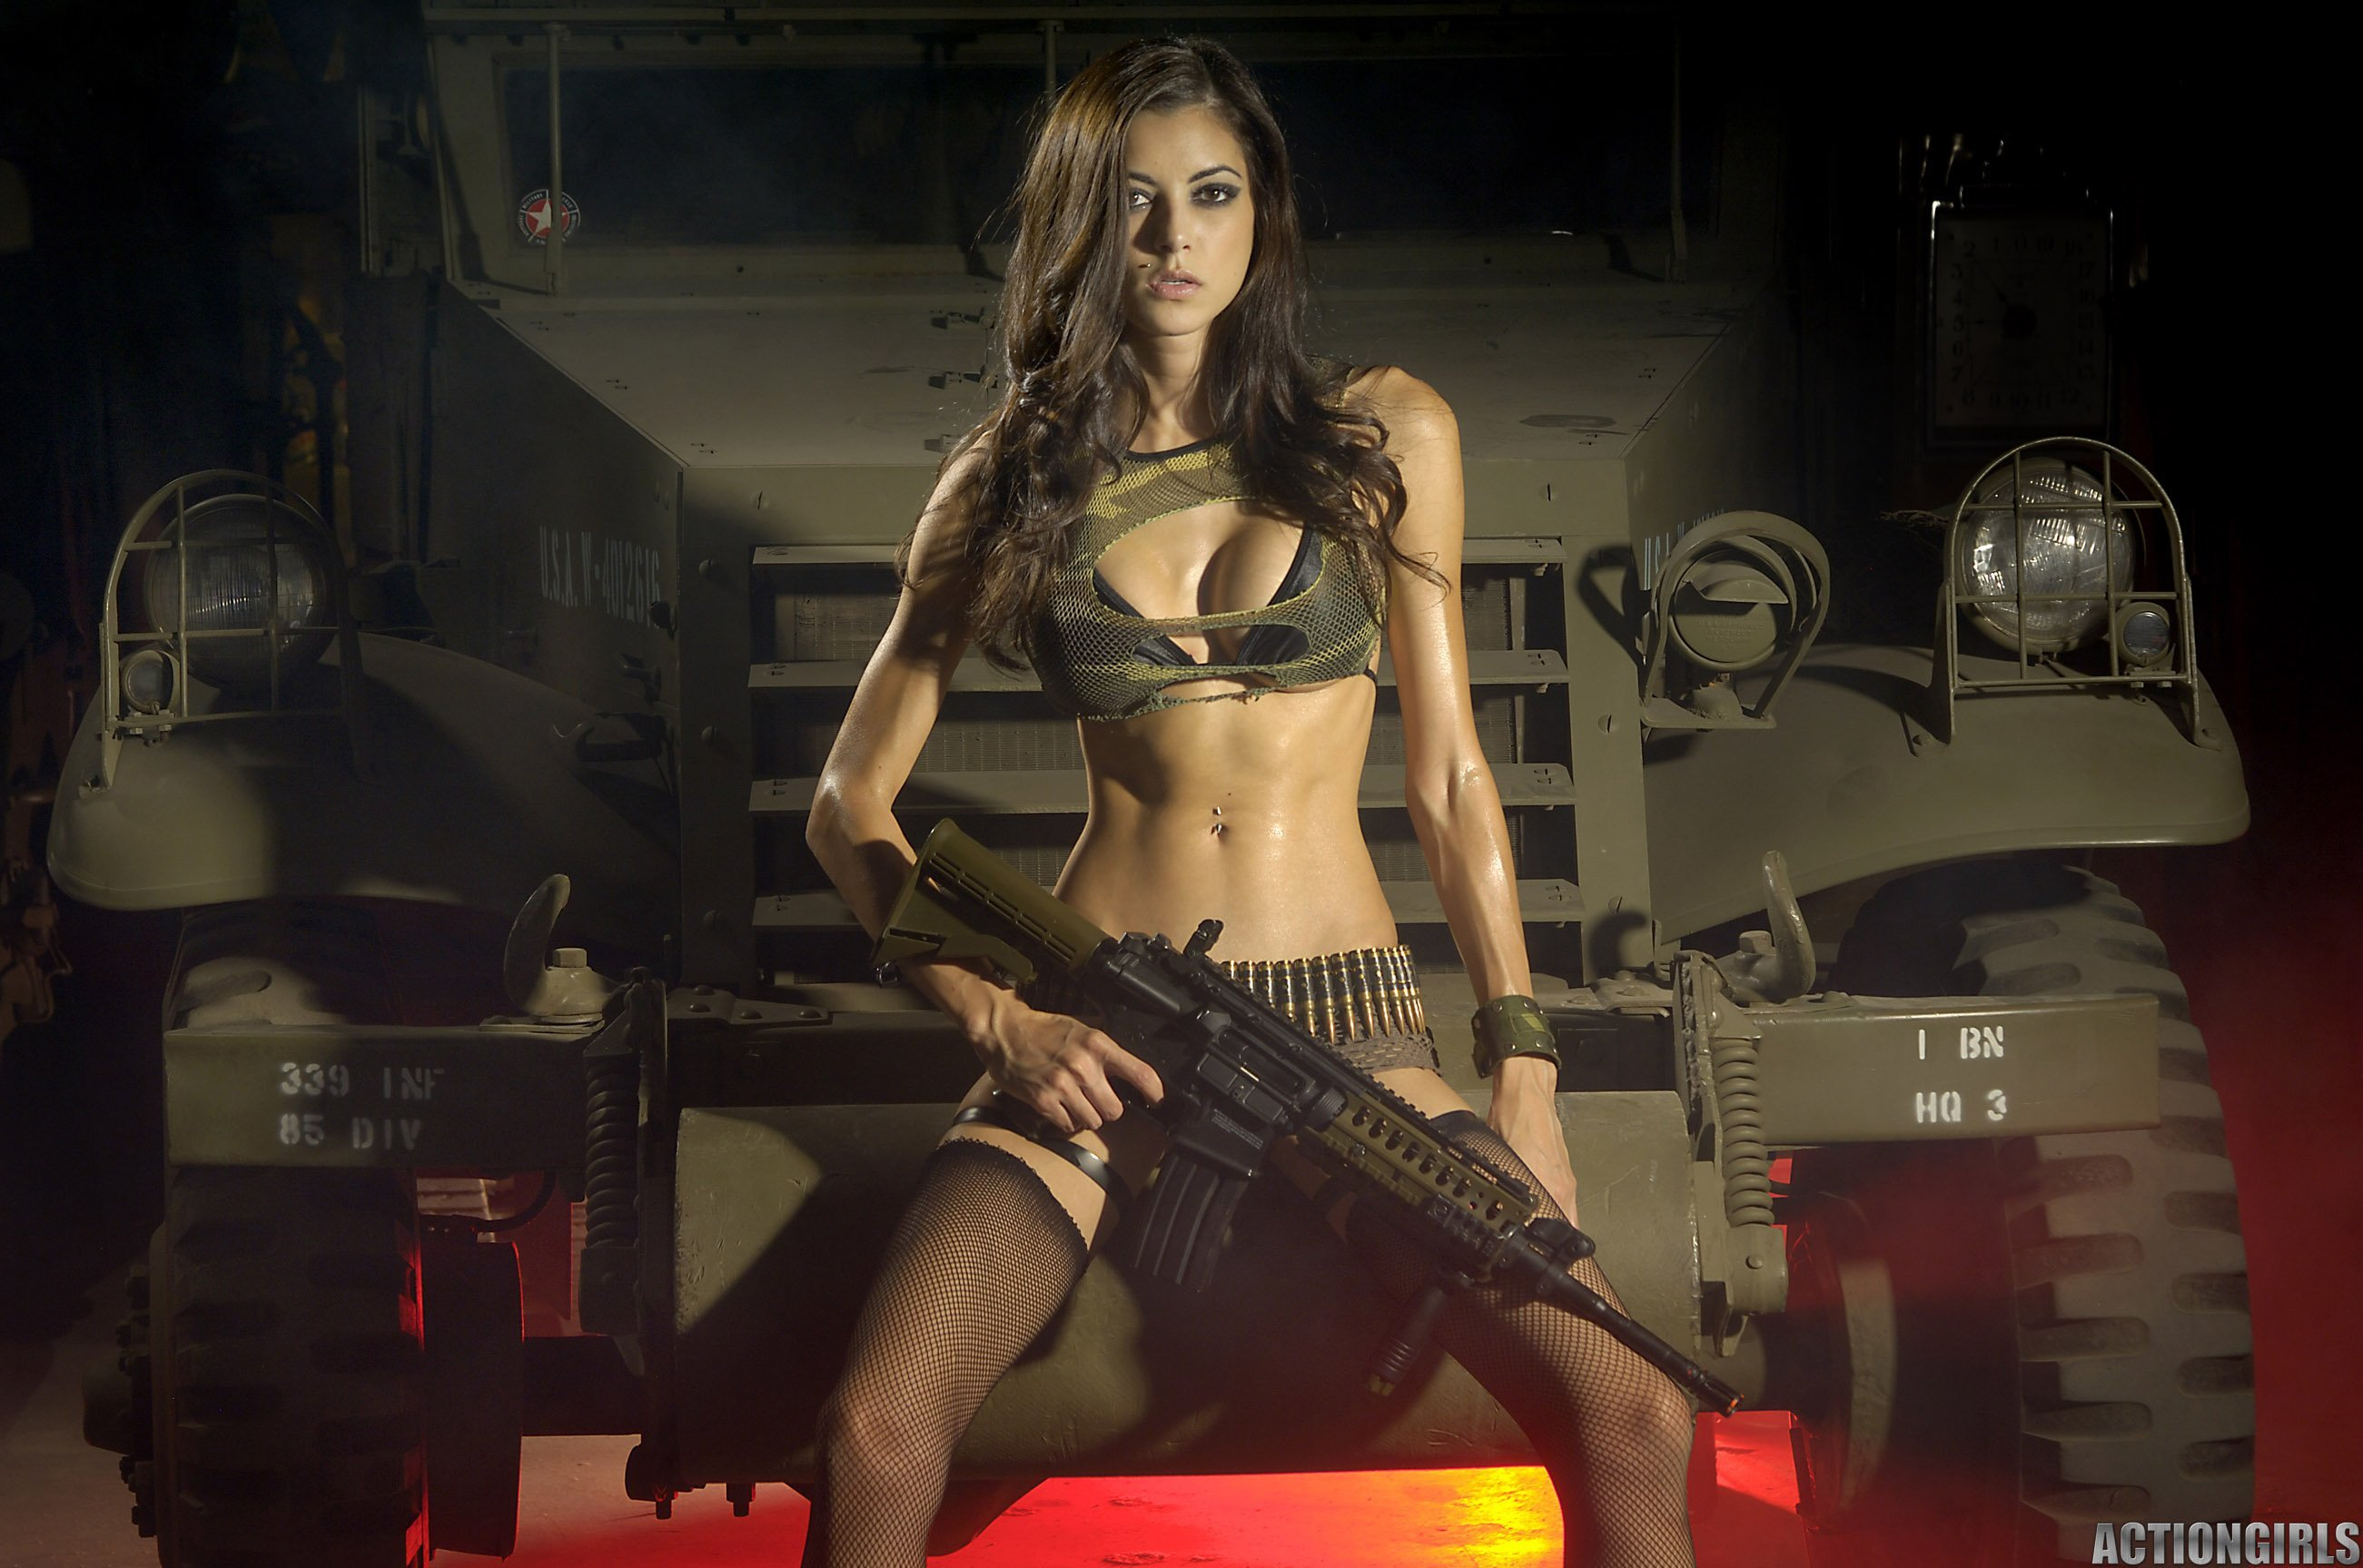 naked girls with guns backgrounds